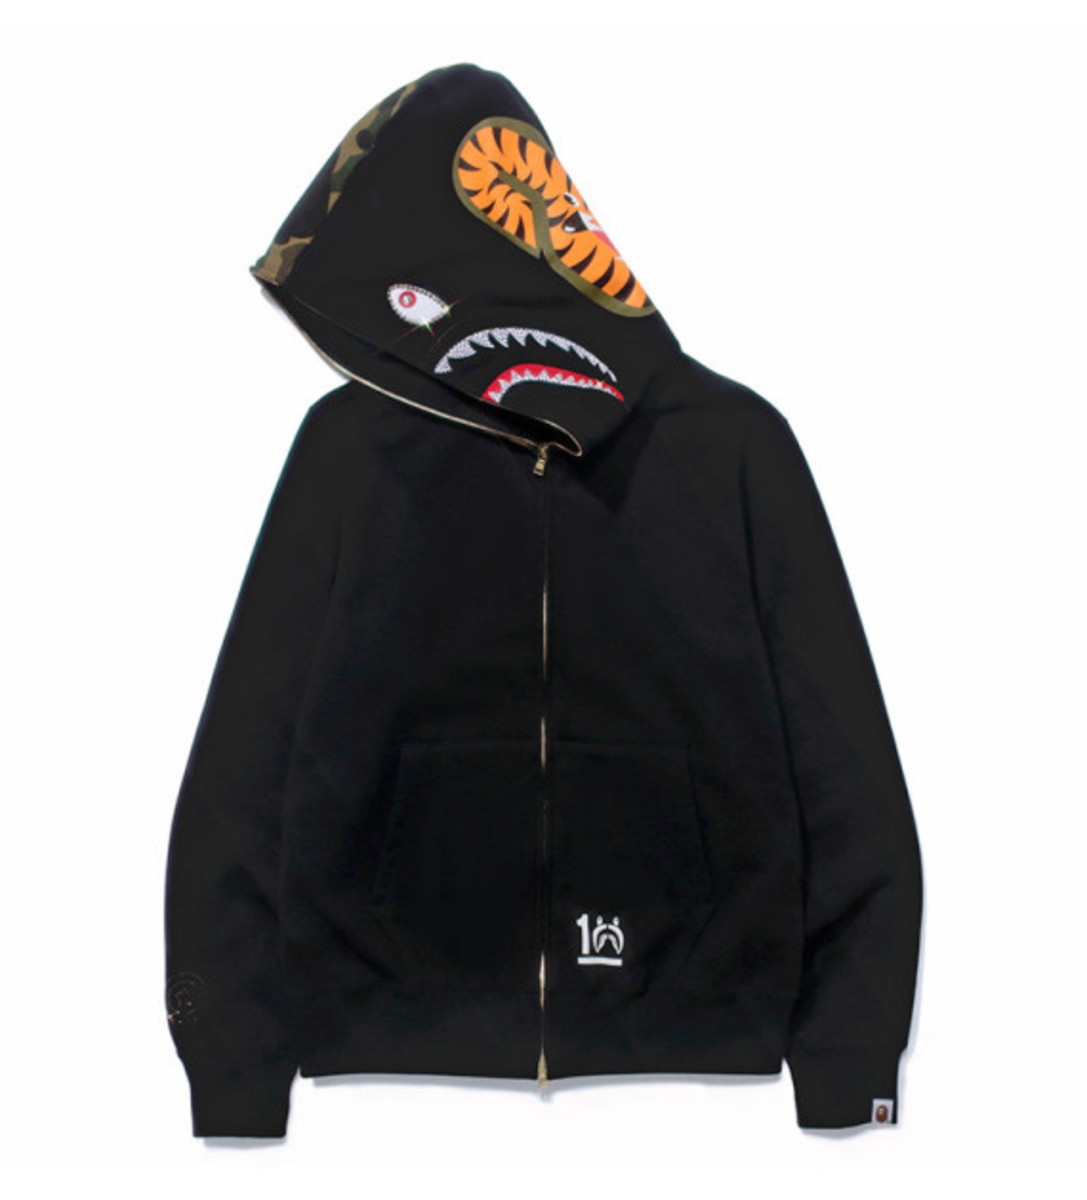 a-bathing-ape-shark-hoodie-10th-anniversary-collection-02